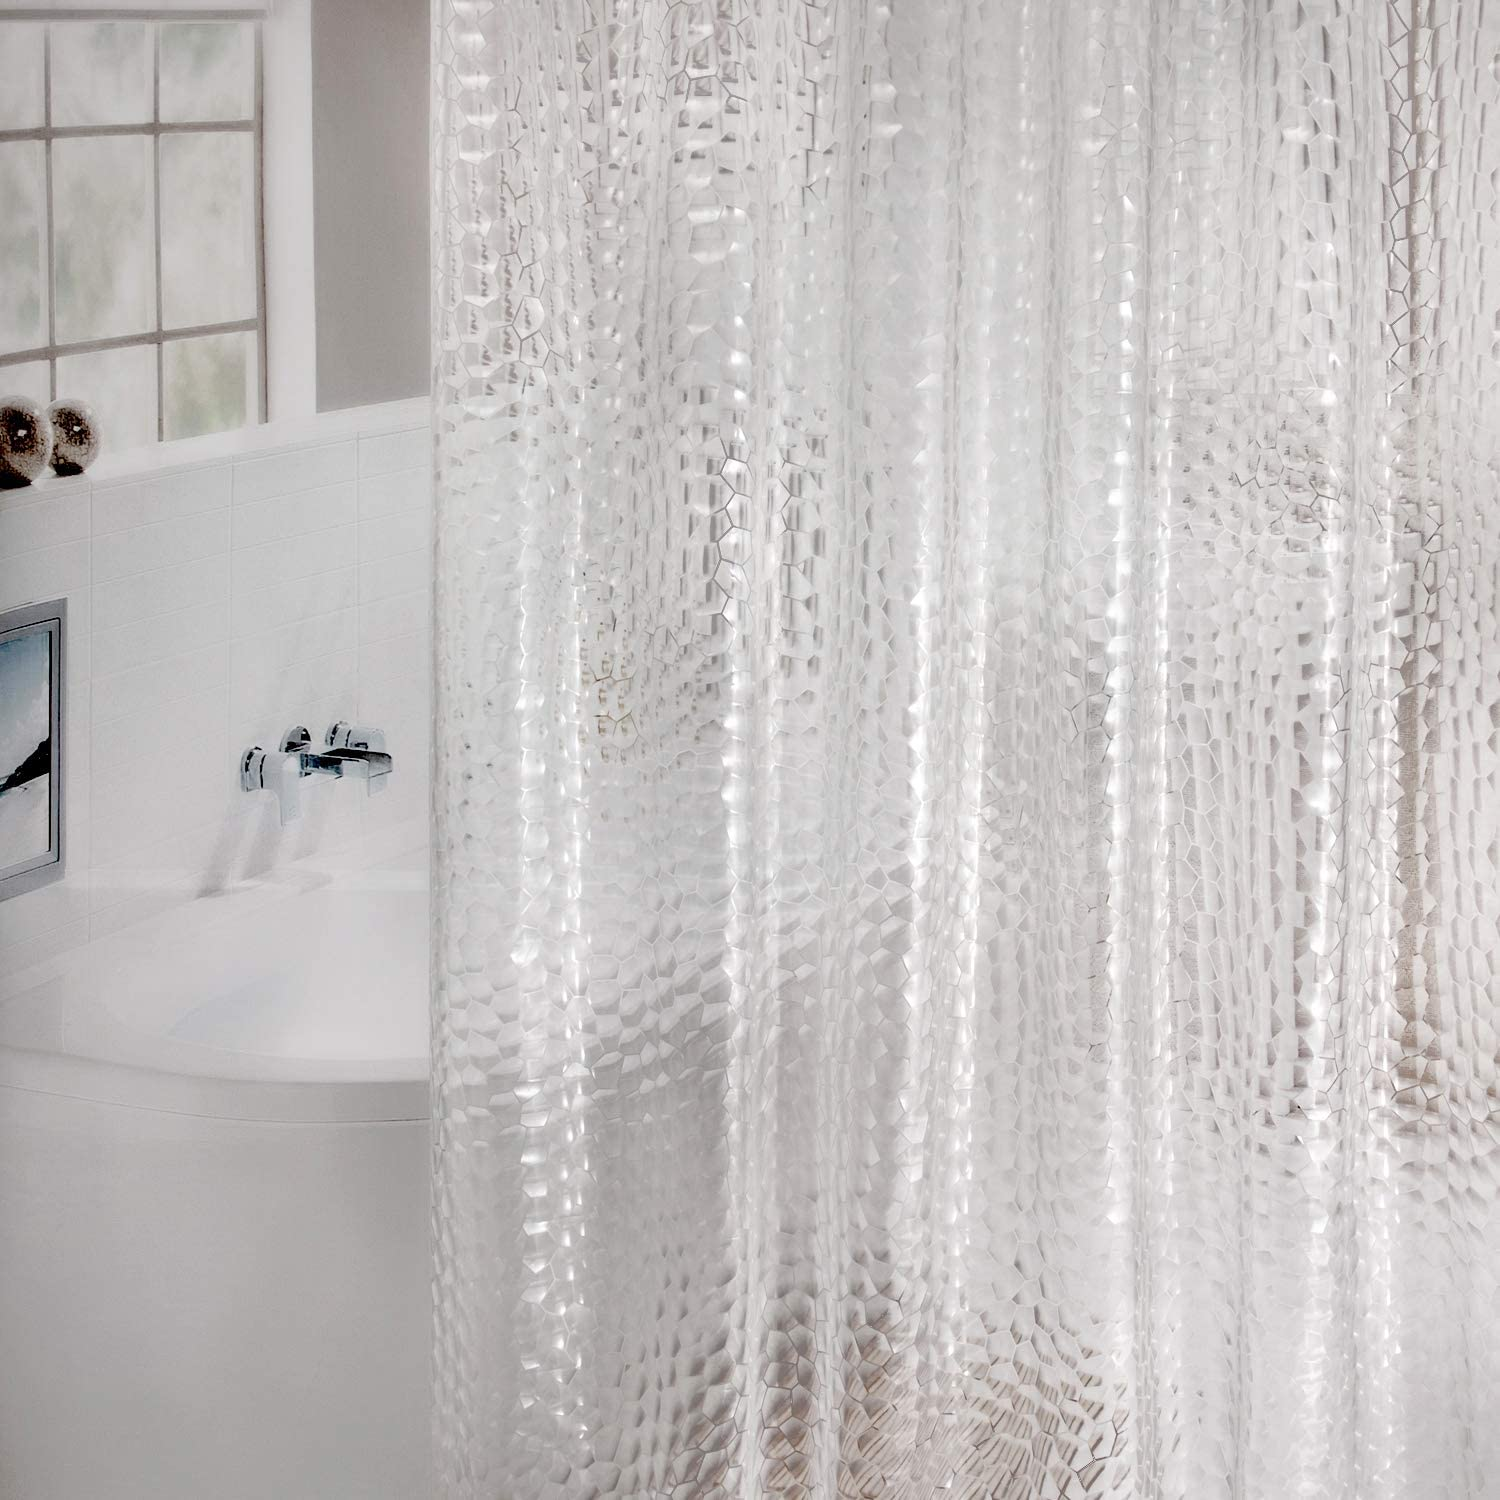 EVA Shower Curtains Water WELTRXE Shower Curtain Liner Heavy Duty with Magnets